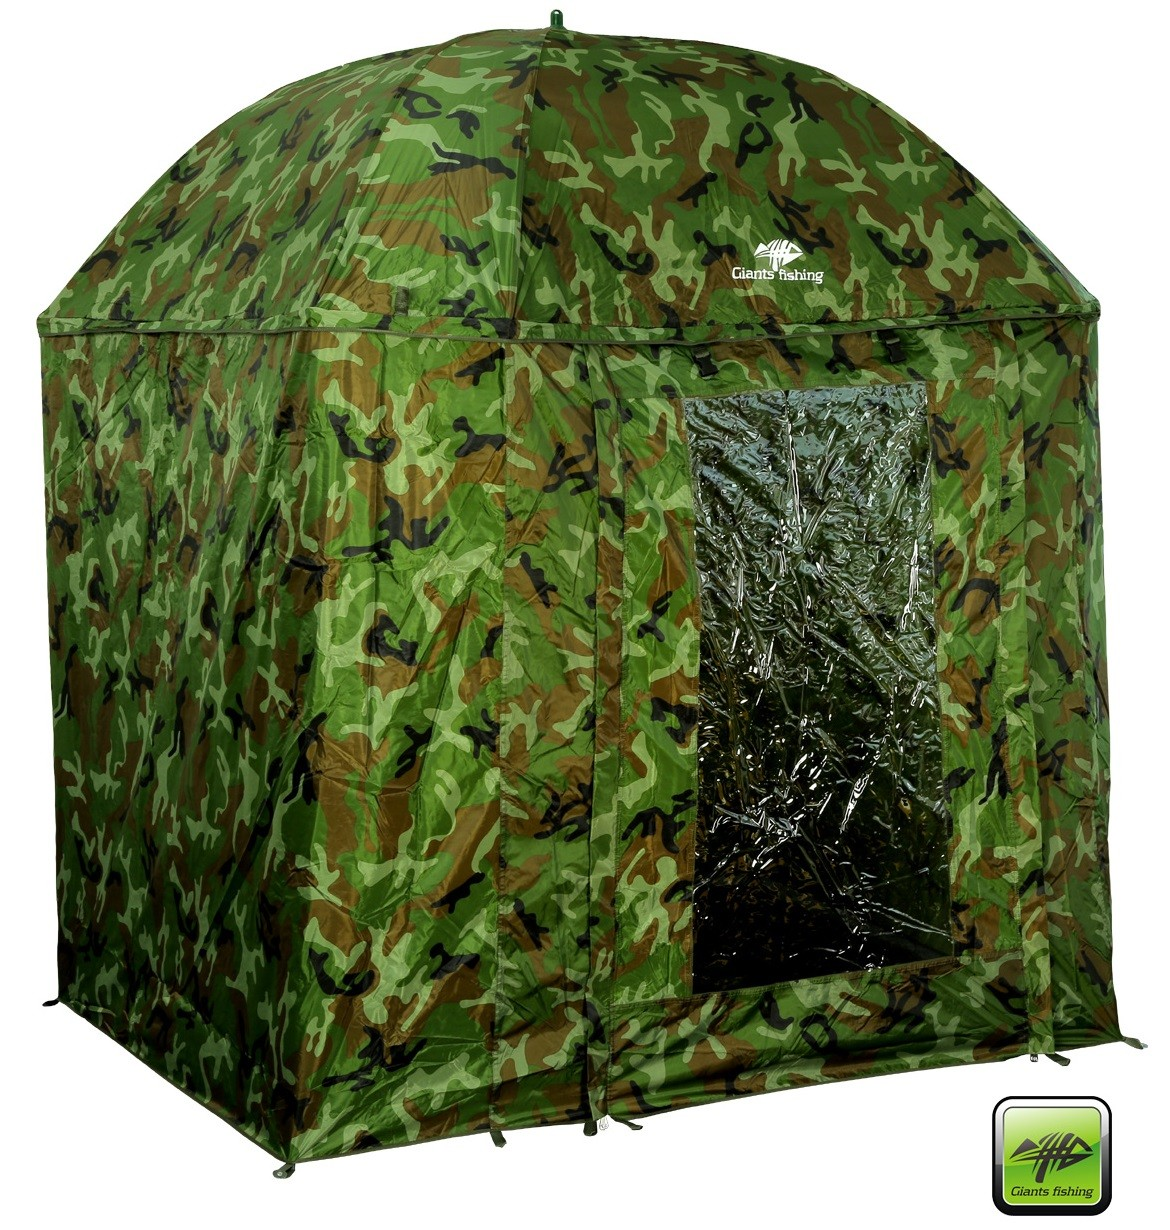 Giants Fishing Full Cover Square Camo Umbrella 250cm deštník